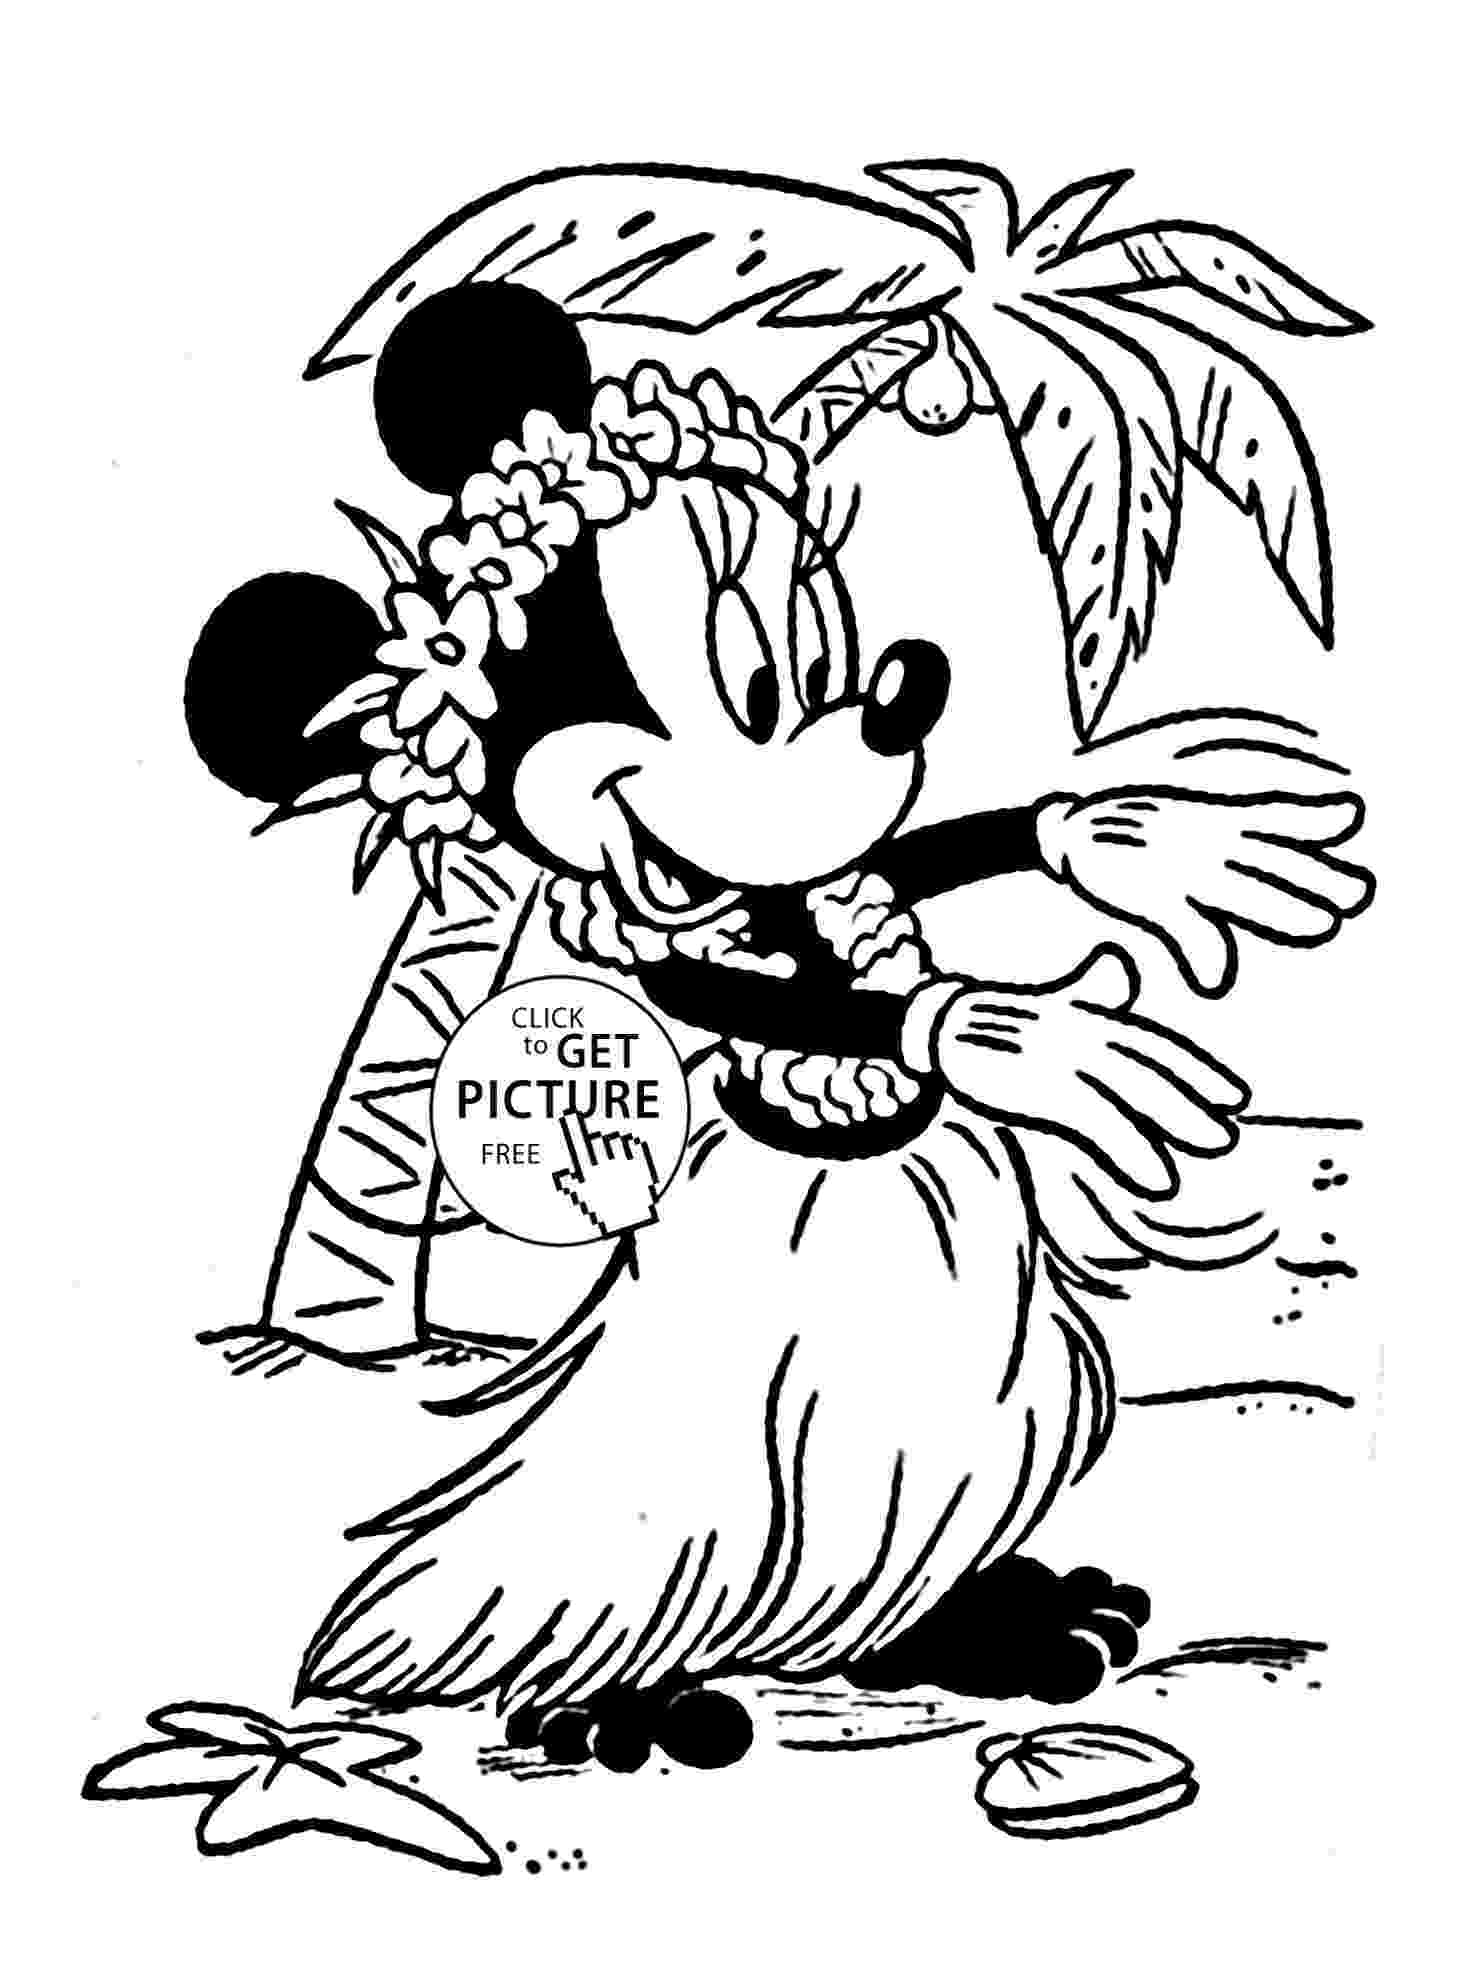 luau coloring sheets luau coloring pages luau sheets coloring